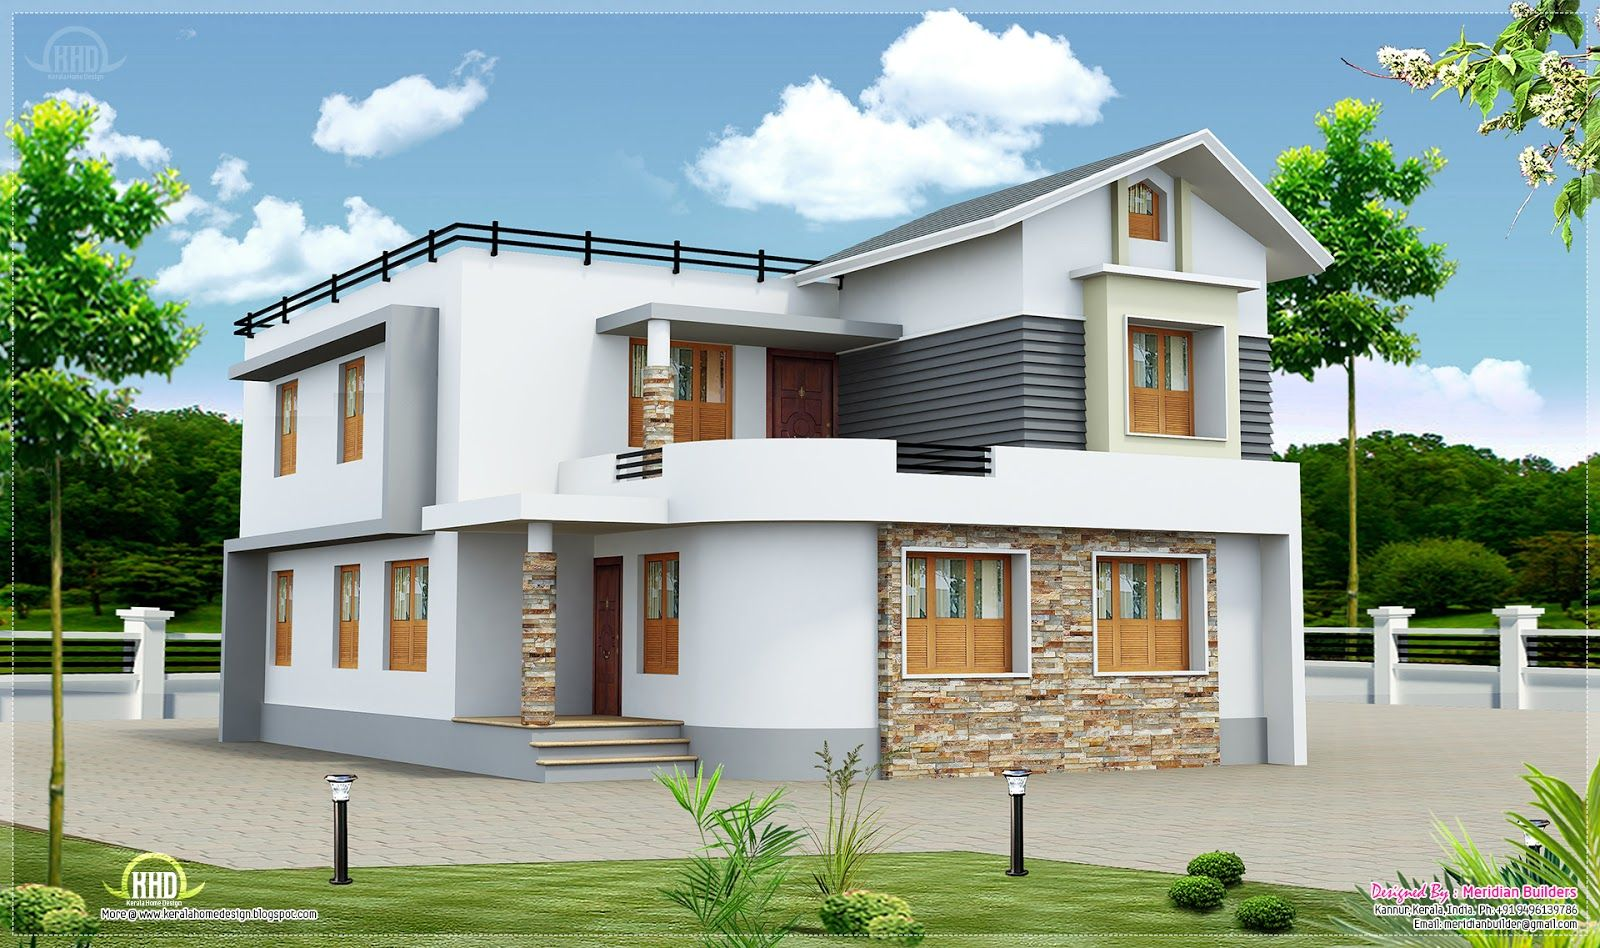 exterior-floor-house-design-ideas-with-two-floors-and-white-wall ...